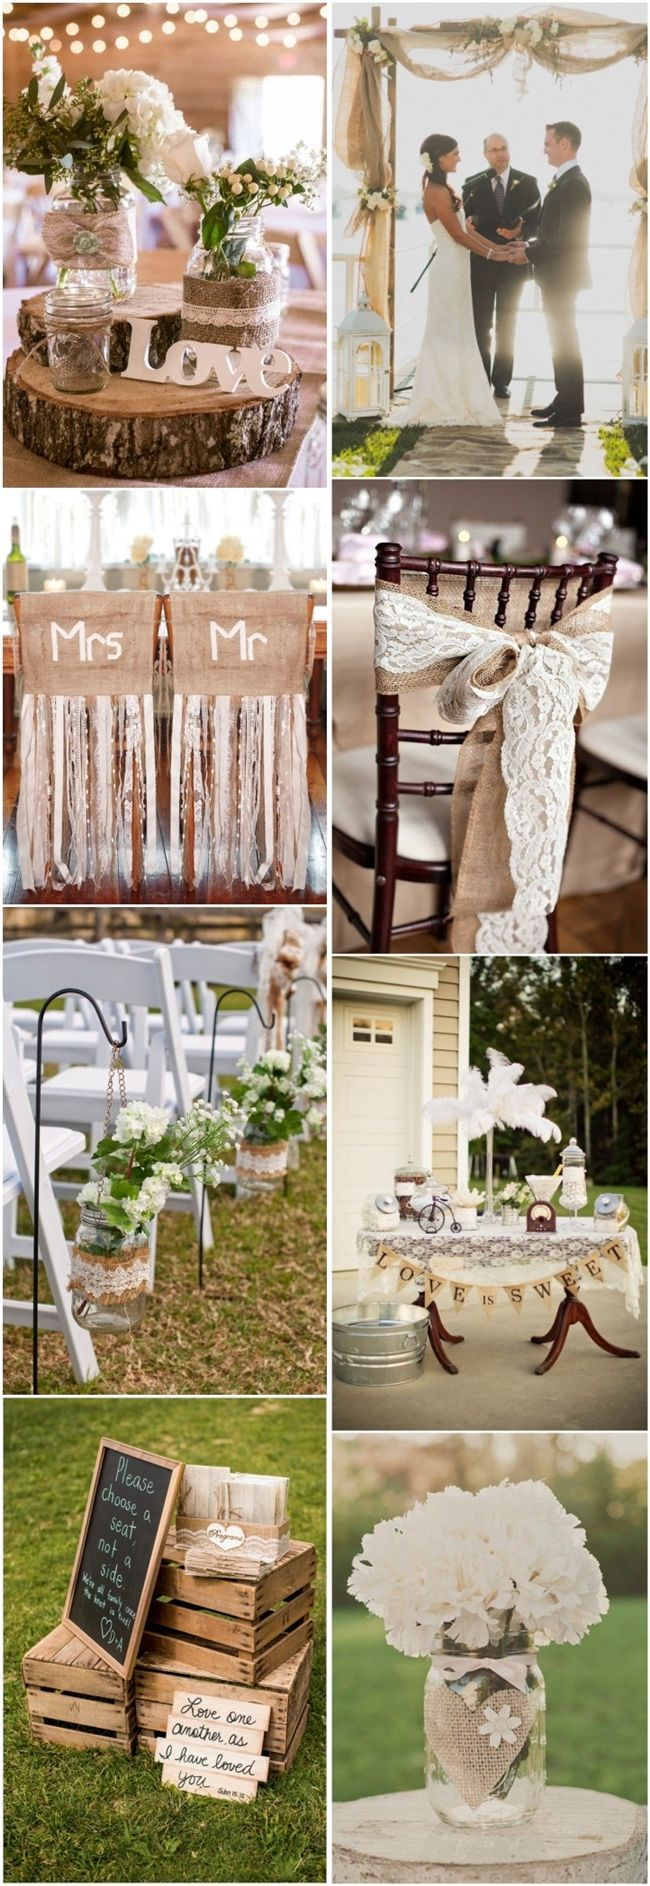 Best 25+ Lace wedding decorations ideas on Pinterest ...